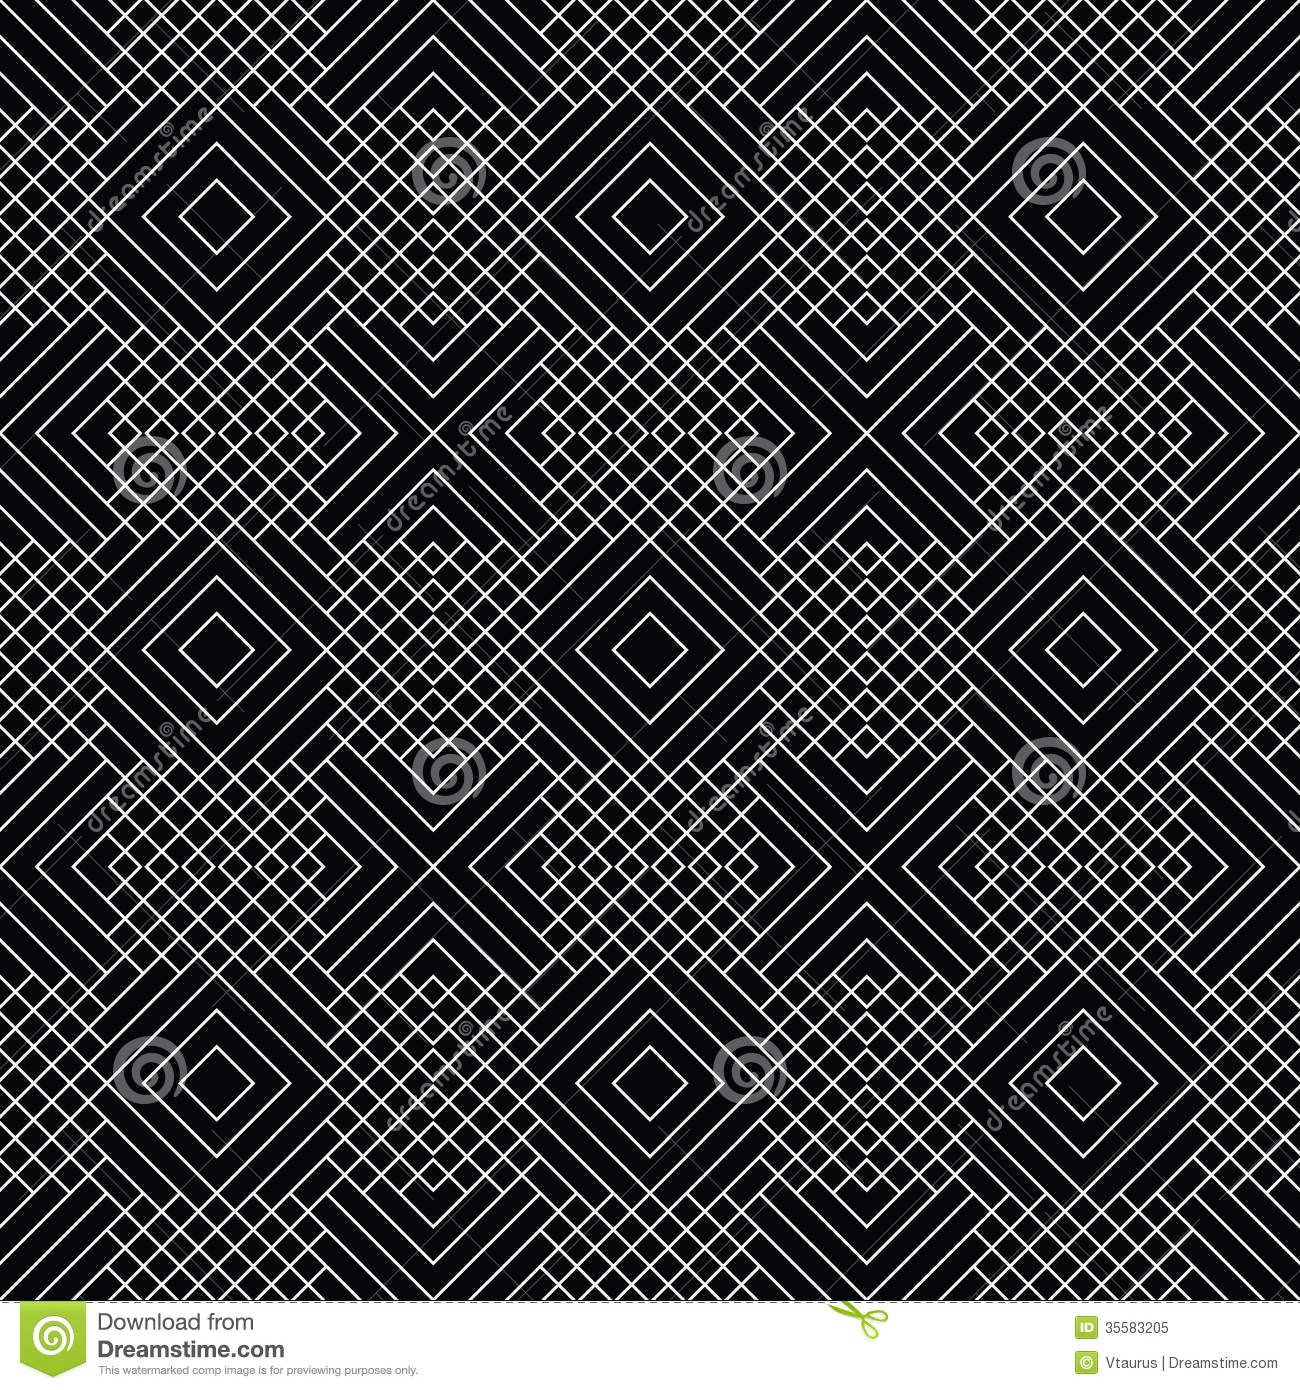 Straight Line In Art Studio : Pattern of straight lines stock vector illustration